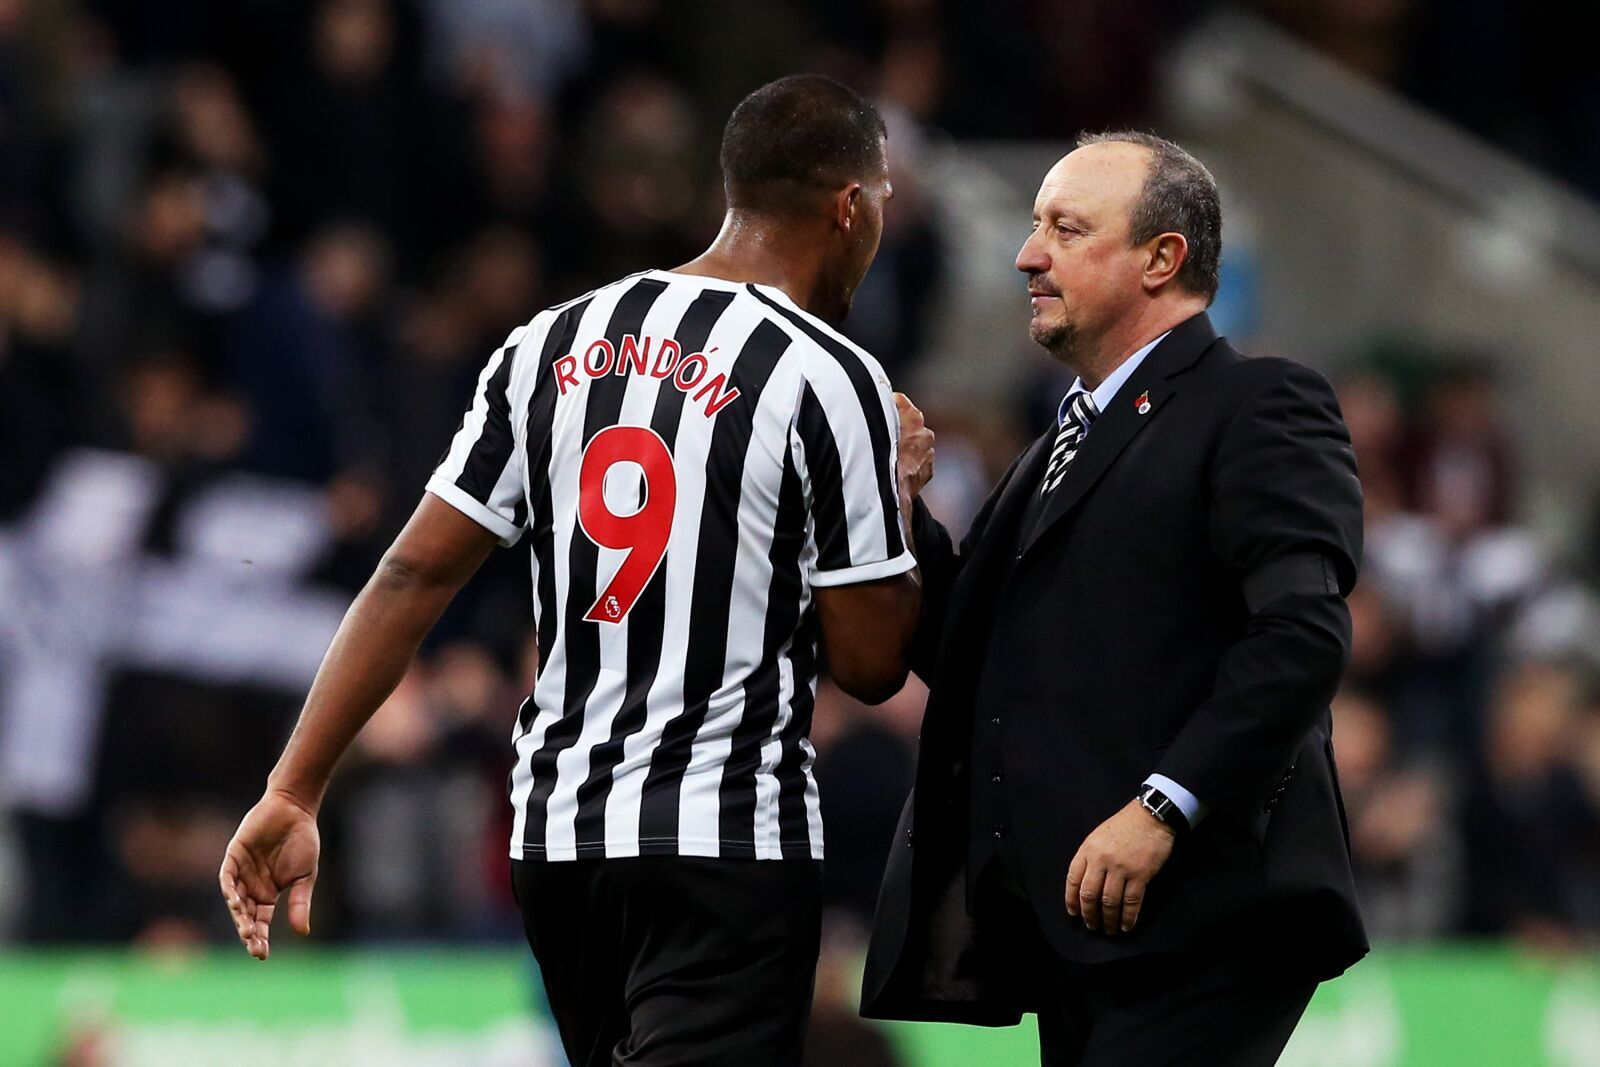 Rondon played well for Rafa after their Newcastle departures